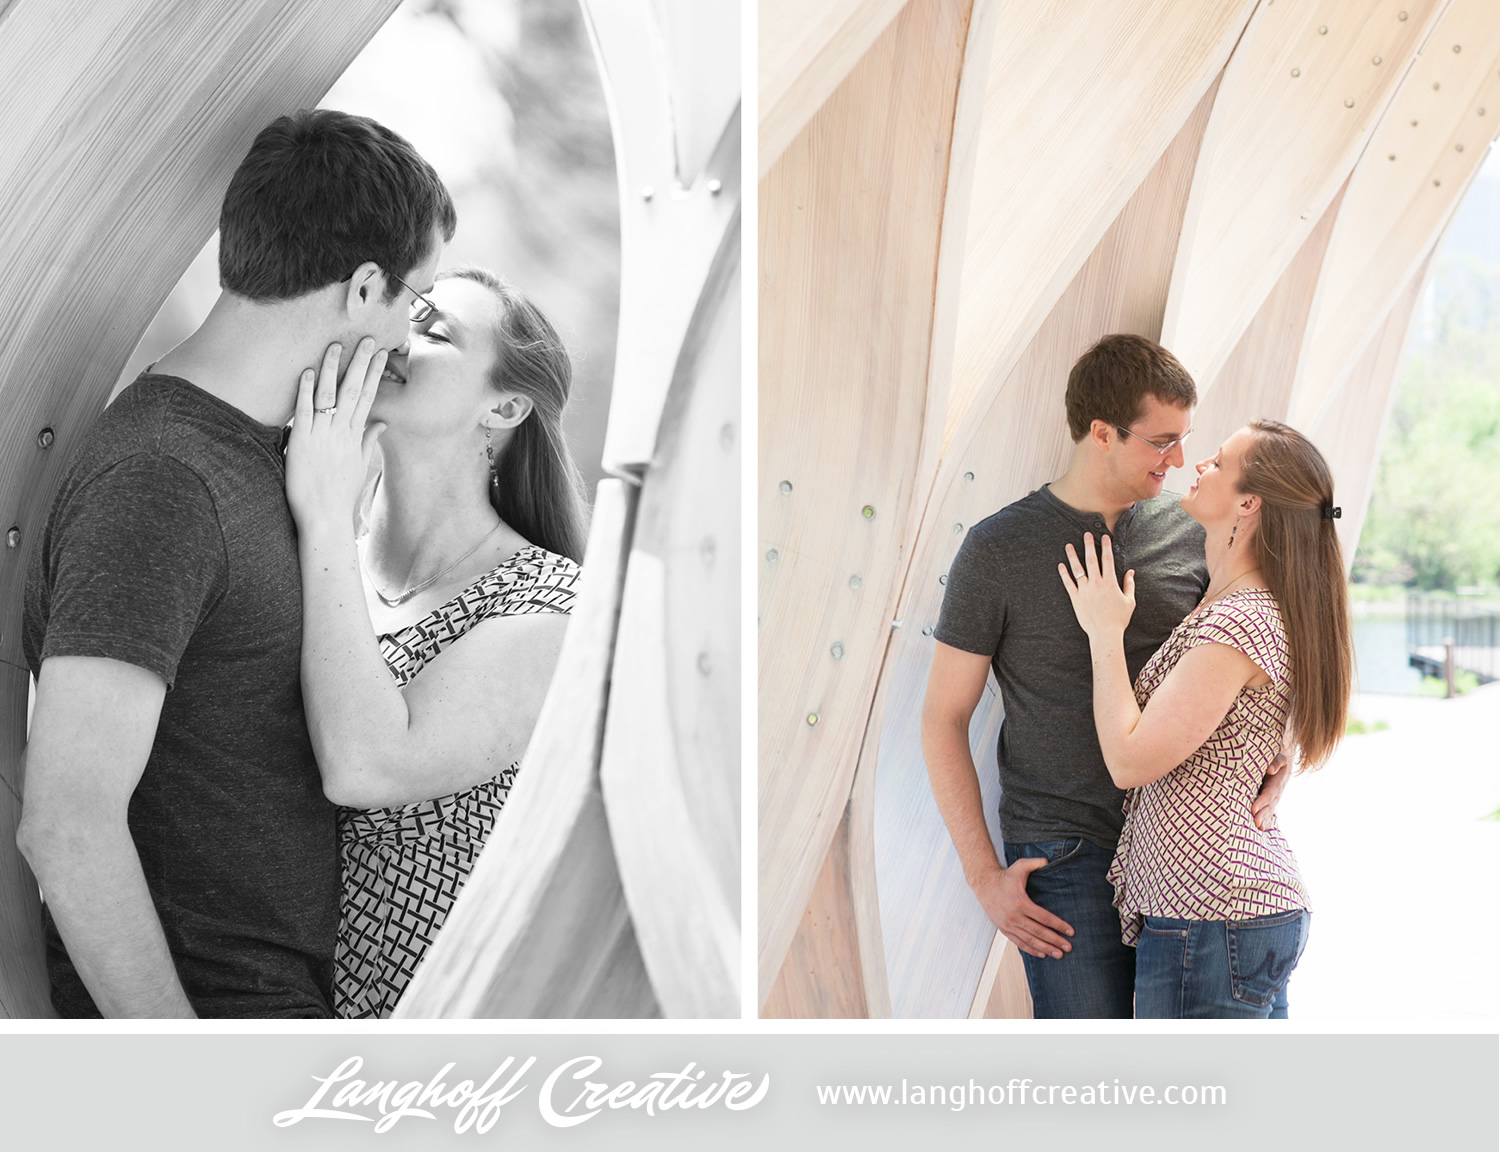 ChicagoEngagement-LincolnParkZoo-Engaged-LanghoffCreative-DestinationWeddingPhotographers-2014-ZacRachel-14-photo.jpg